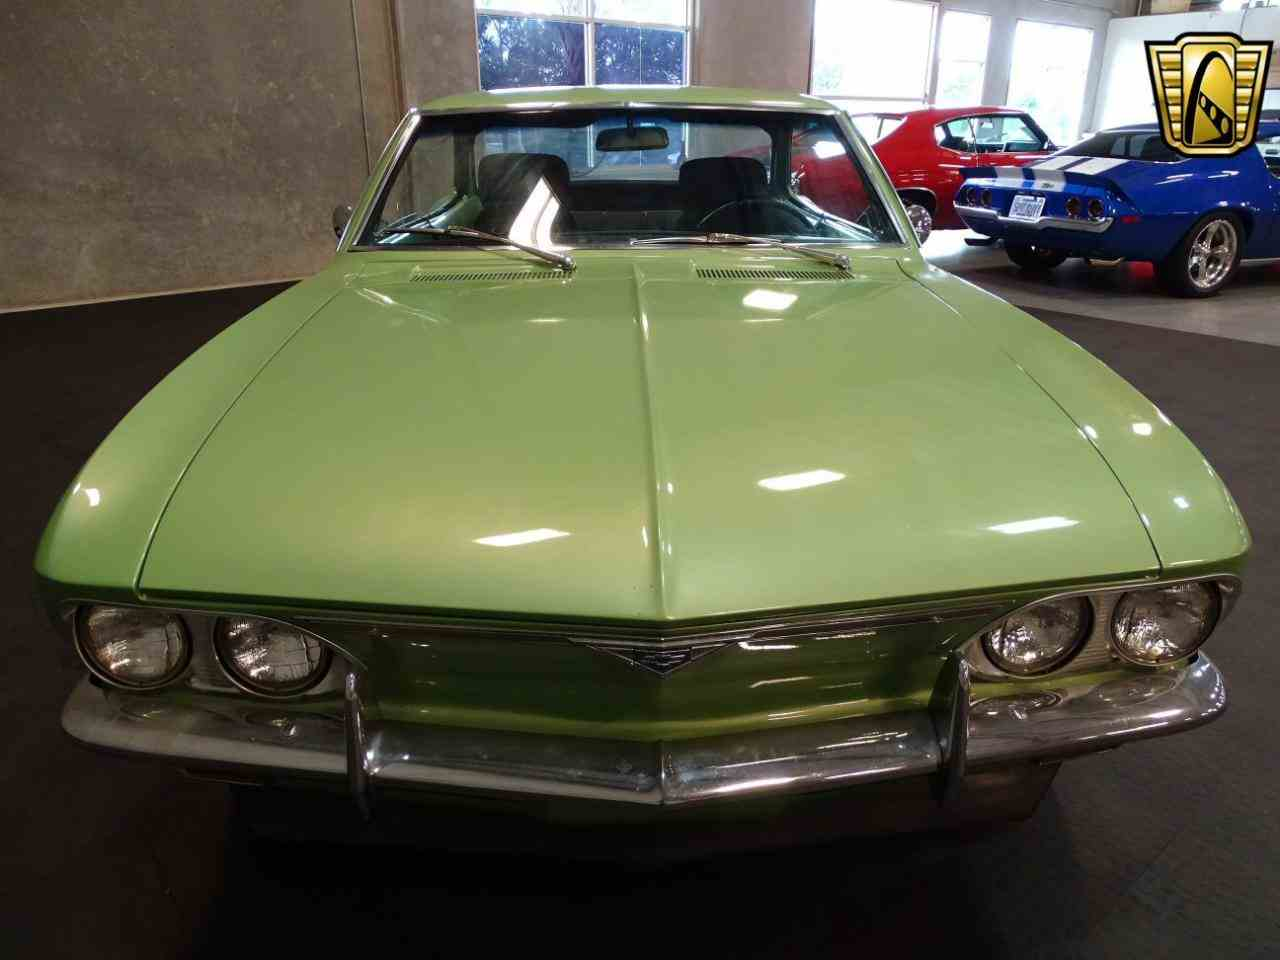 Large Picture of Classic 1966 Corvair located in Ruskin Florida - $10,995.00 - KDJM